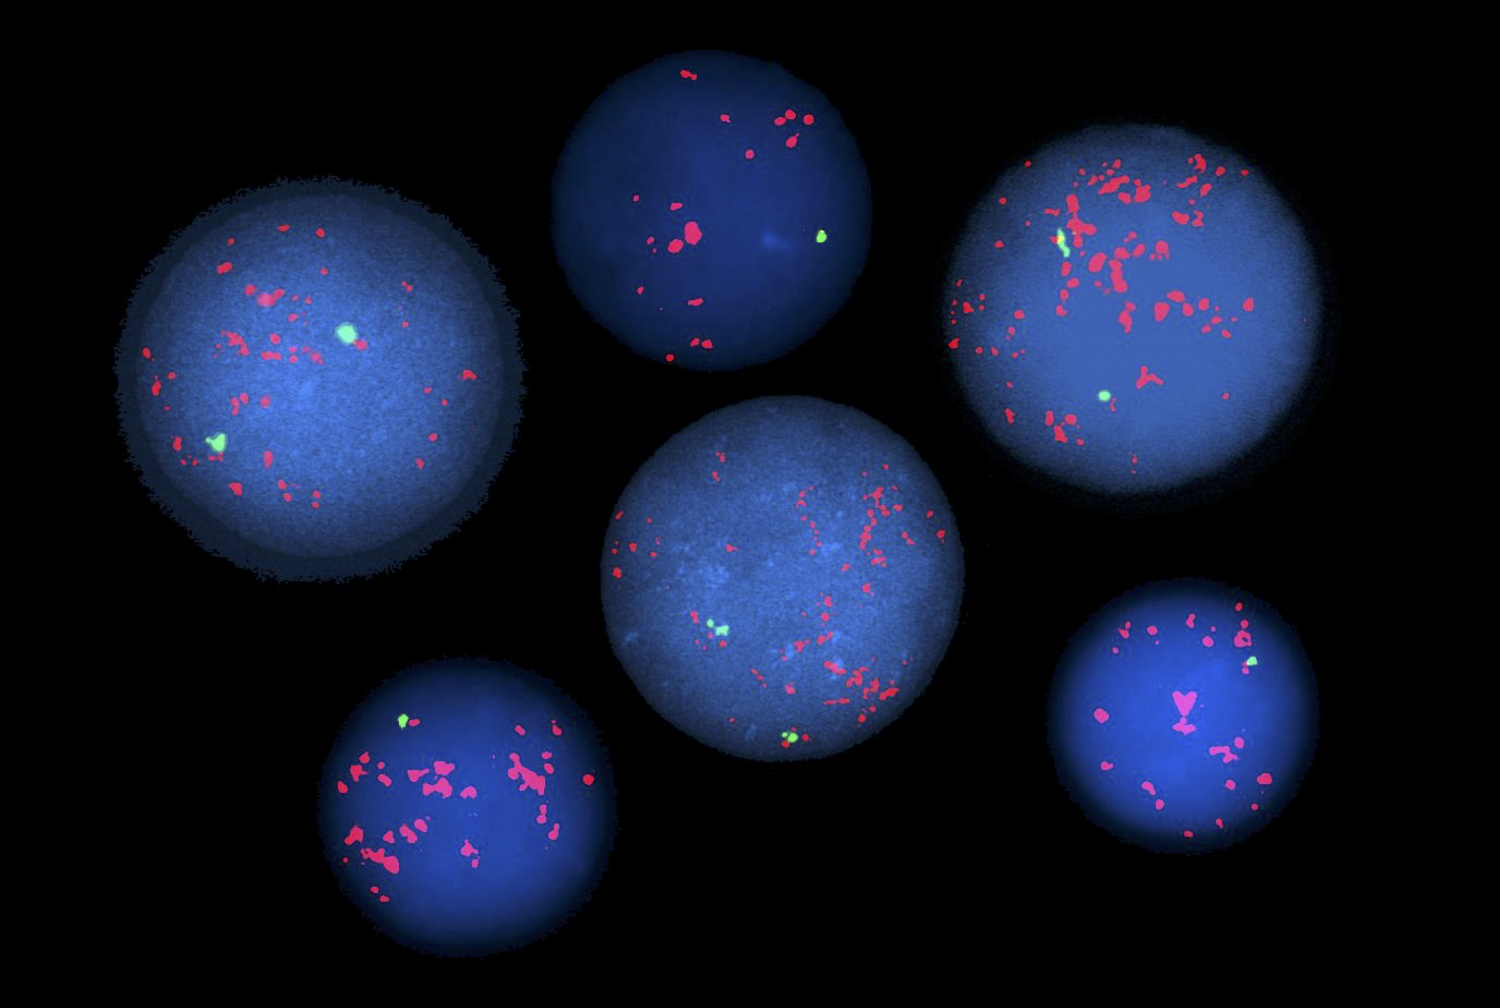 Image shows fluorescent chromosome staining revealing genetic abnormalities in blood cells. Photo credit: Dr. Susan Mathew